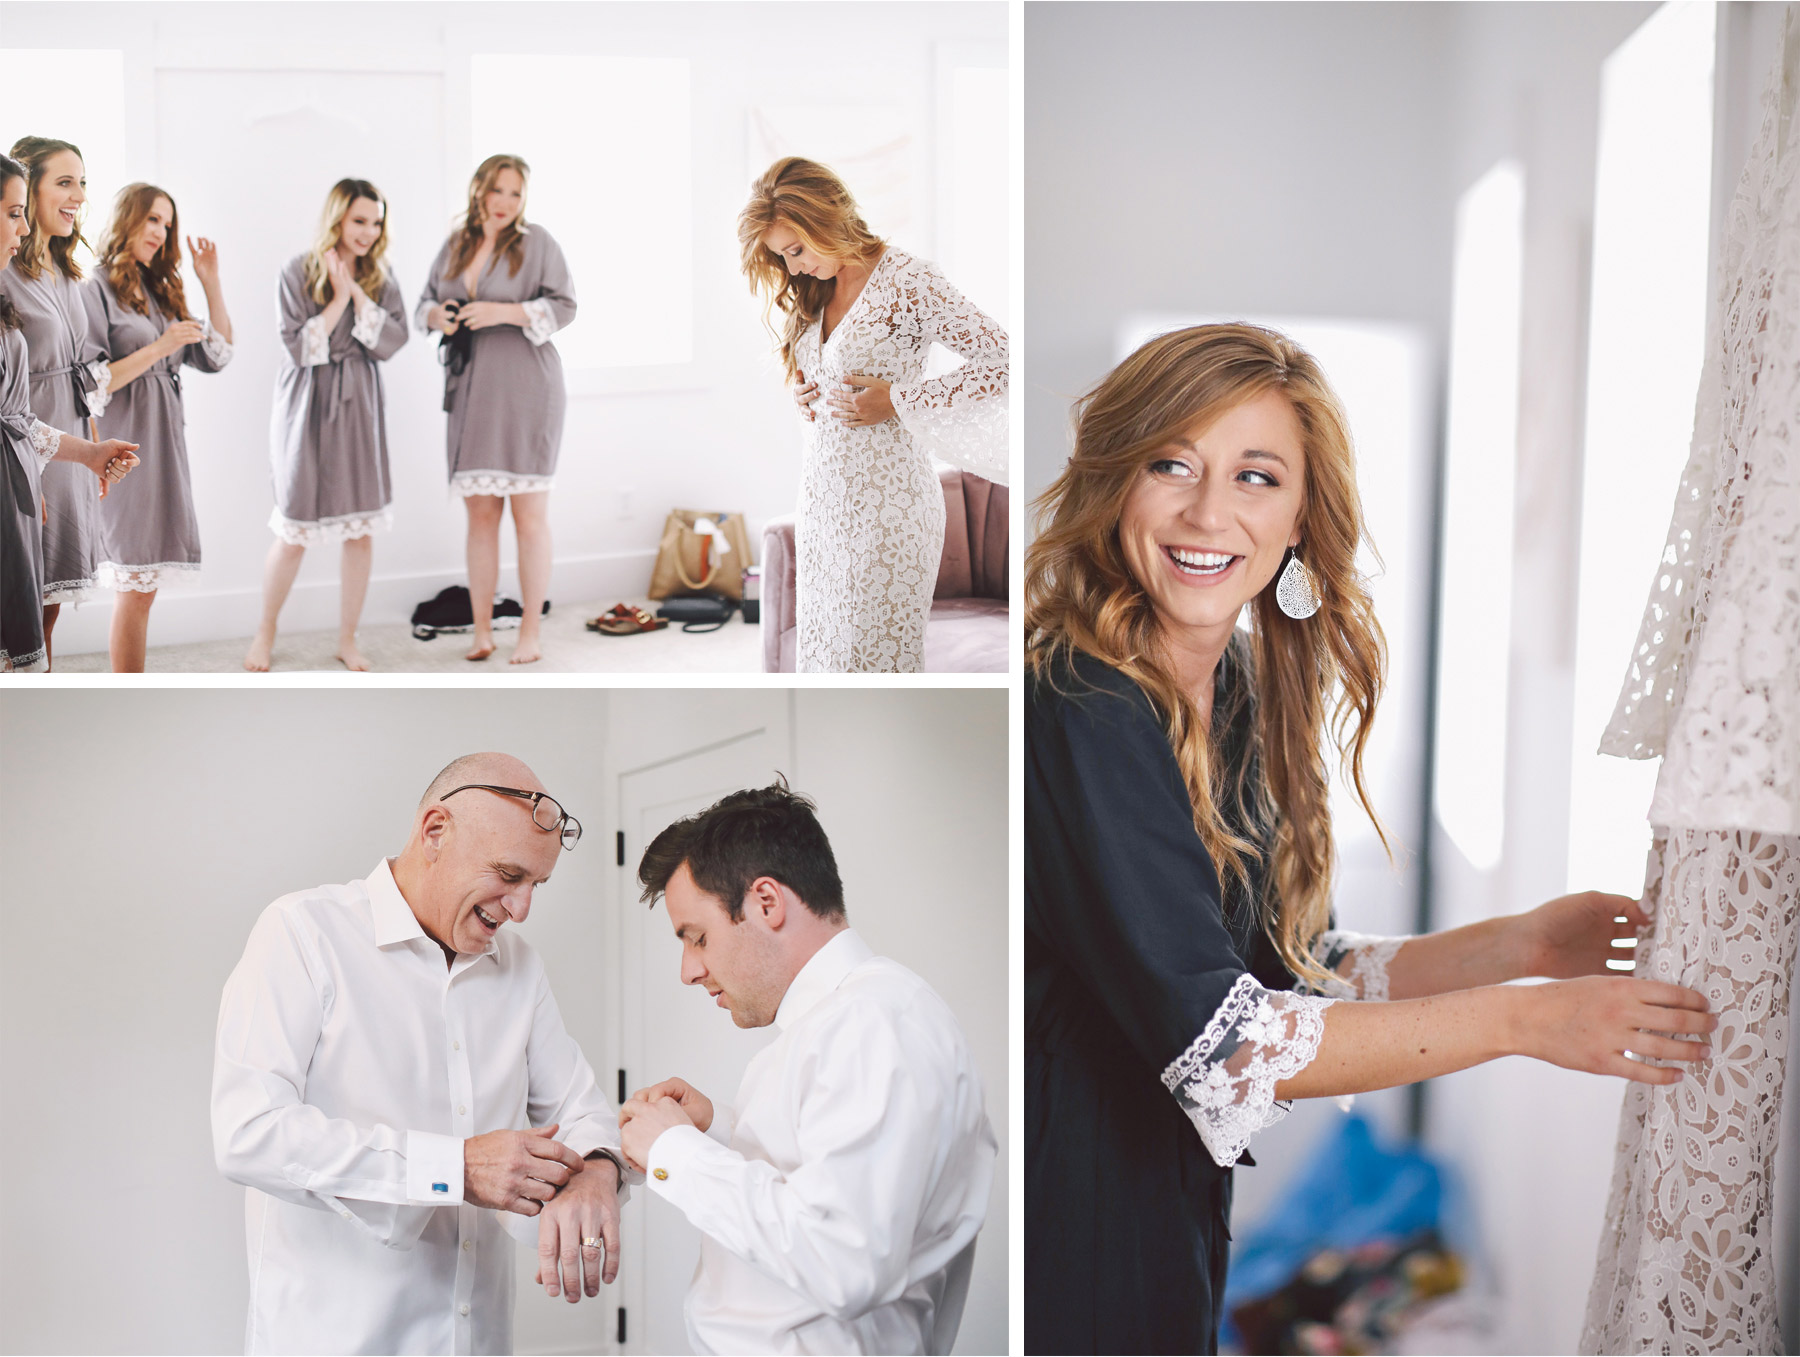 02-Minneapolis-Minnesota-Wedding-Photography-by-Andrew-Vick-Photography-Hutton-House-Bridesmaids-Robes-Groom-and-Father-Bride-Getting-Ready-Kelsey-and-Matt.jpg